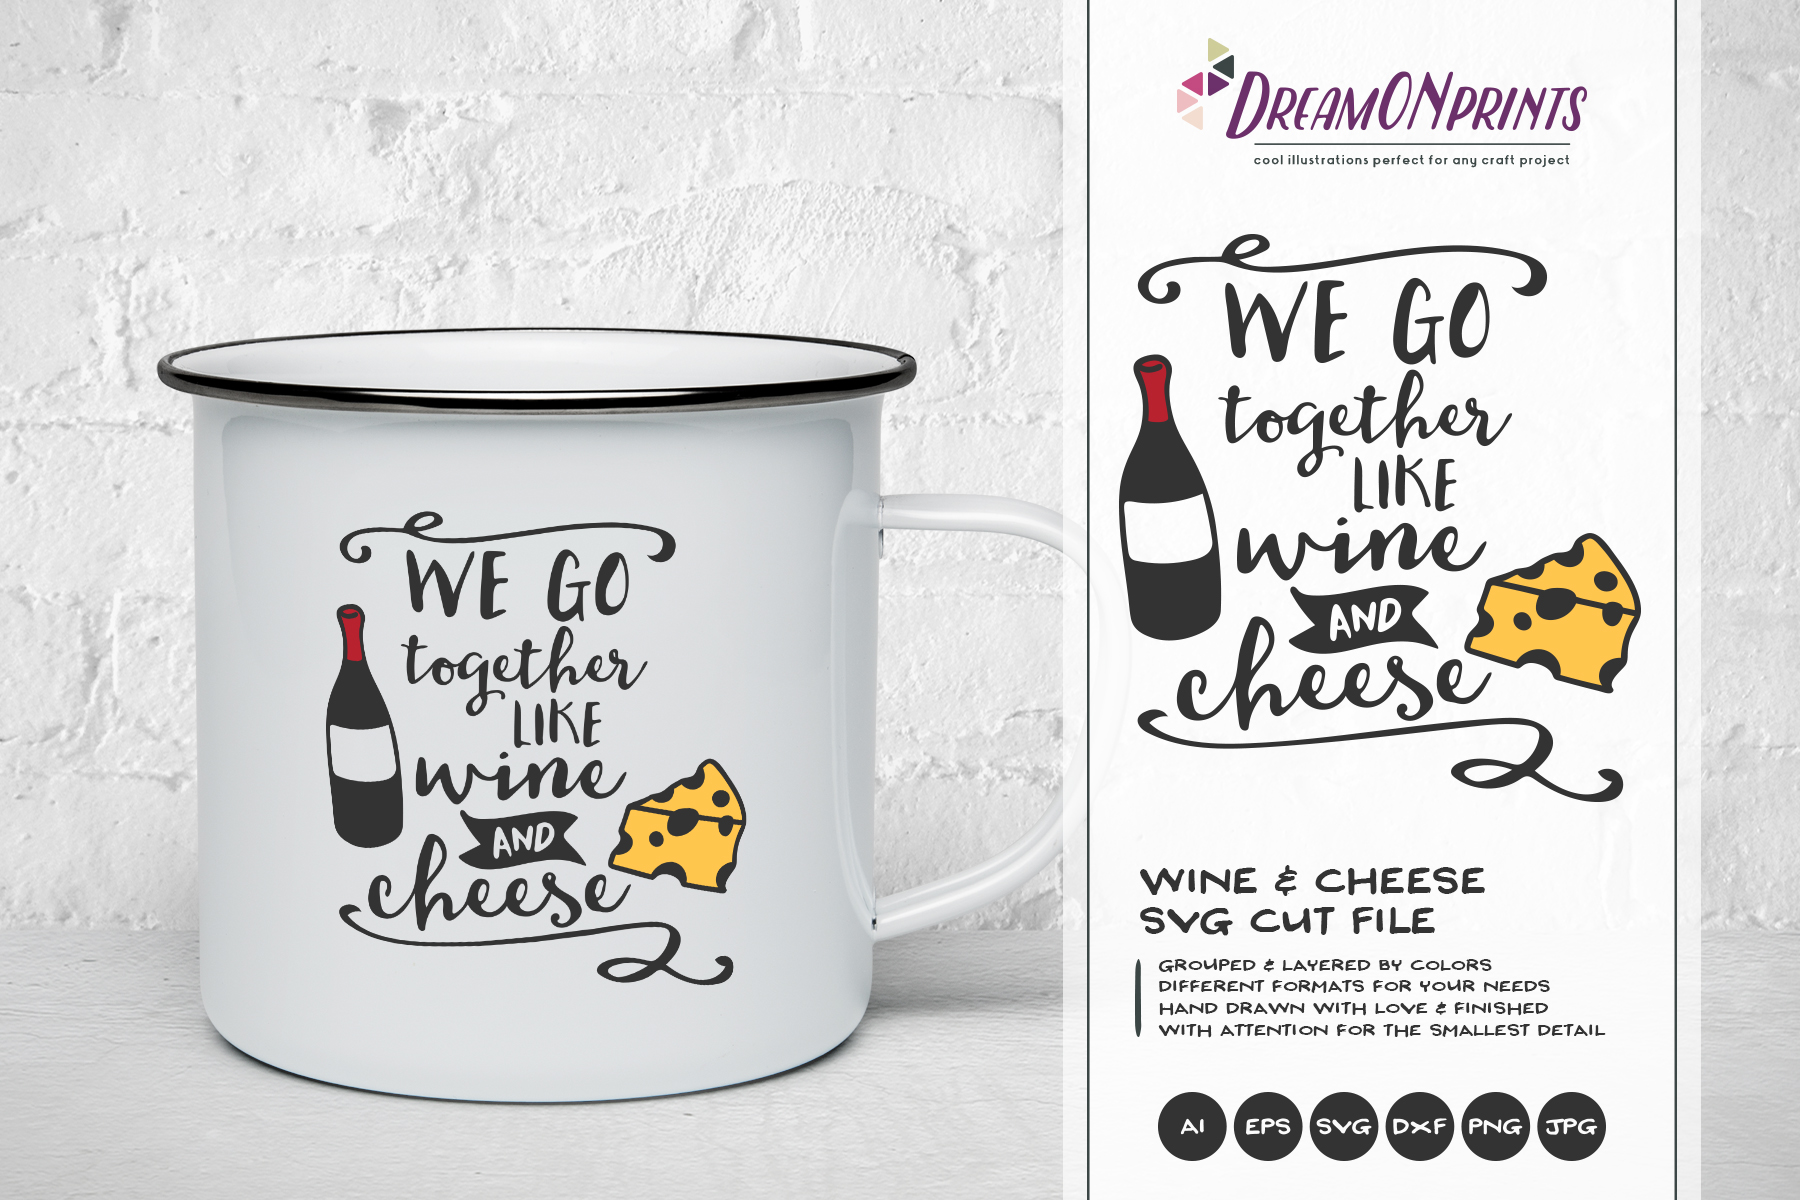 Wine and Cheese SVG BUNDLE - Bundle SVG Cut Files example image 8